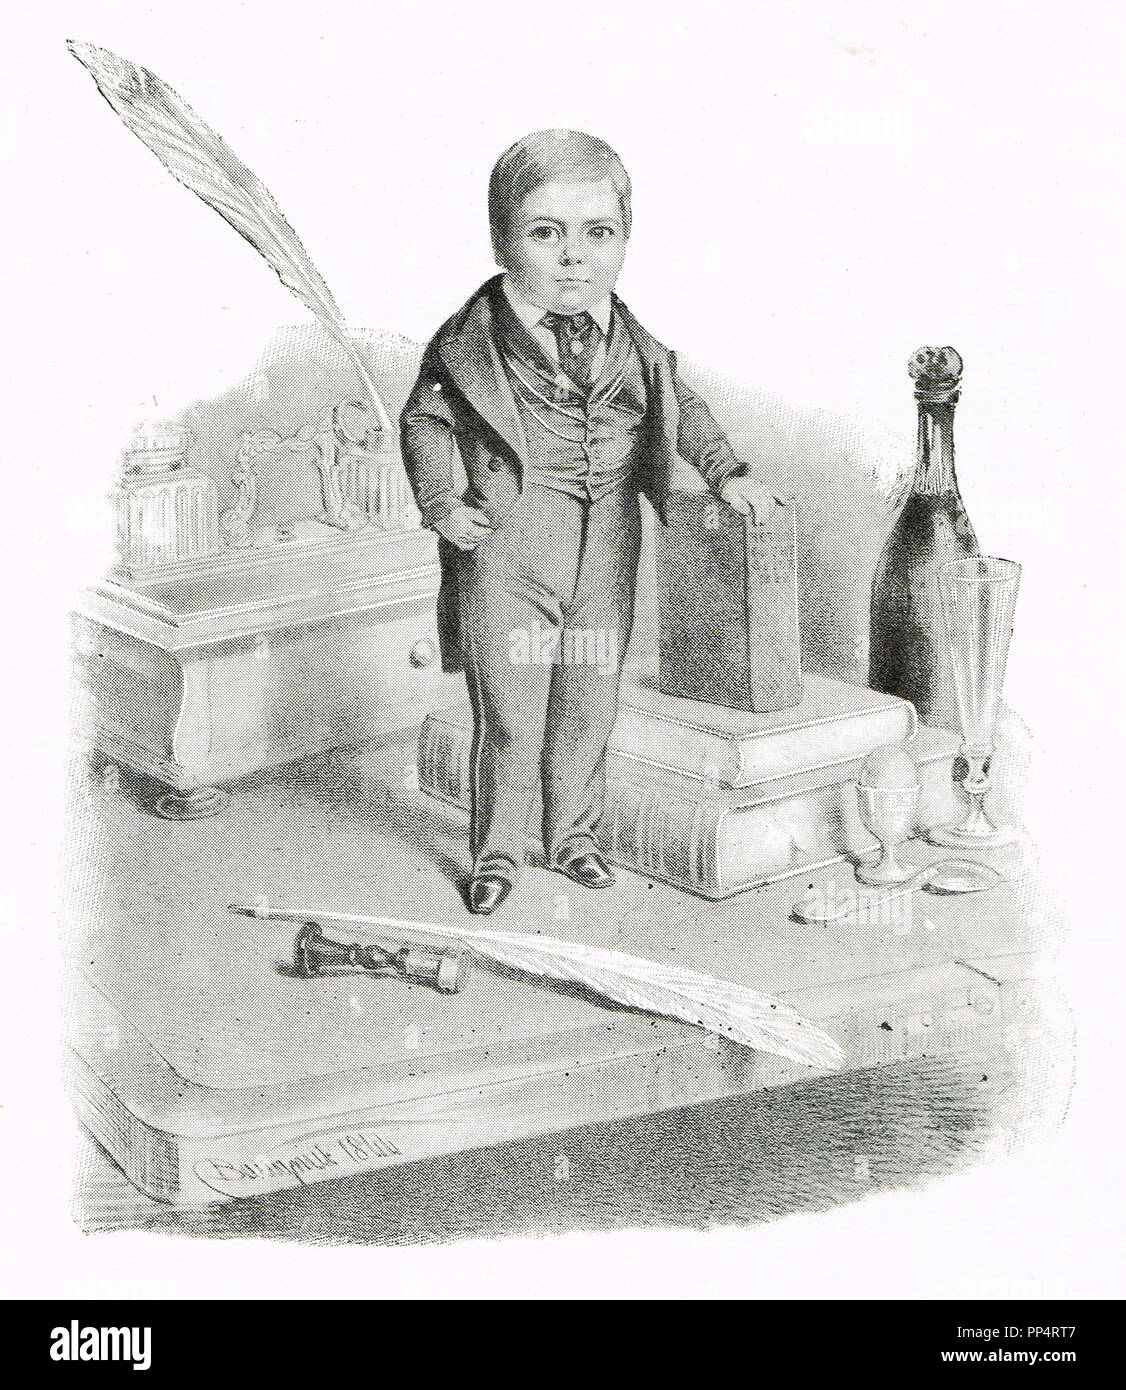 Charles Sherwood Stratton, better known by his stage name General Tom Thumb, in 1844,  on a visit to Queen Victoria - Stock Image